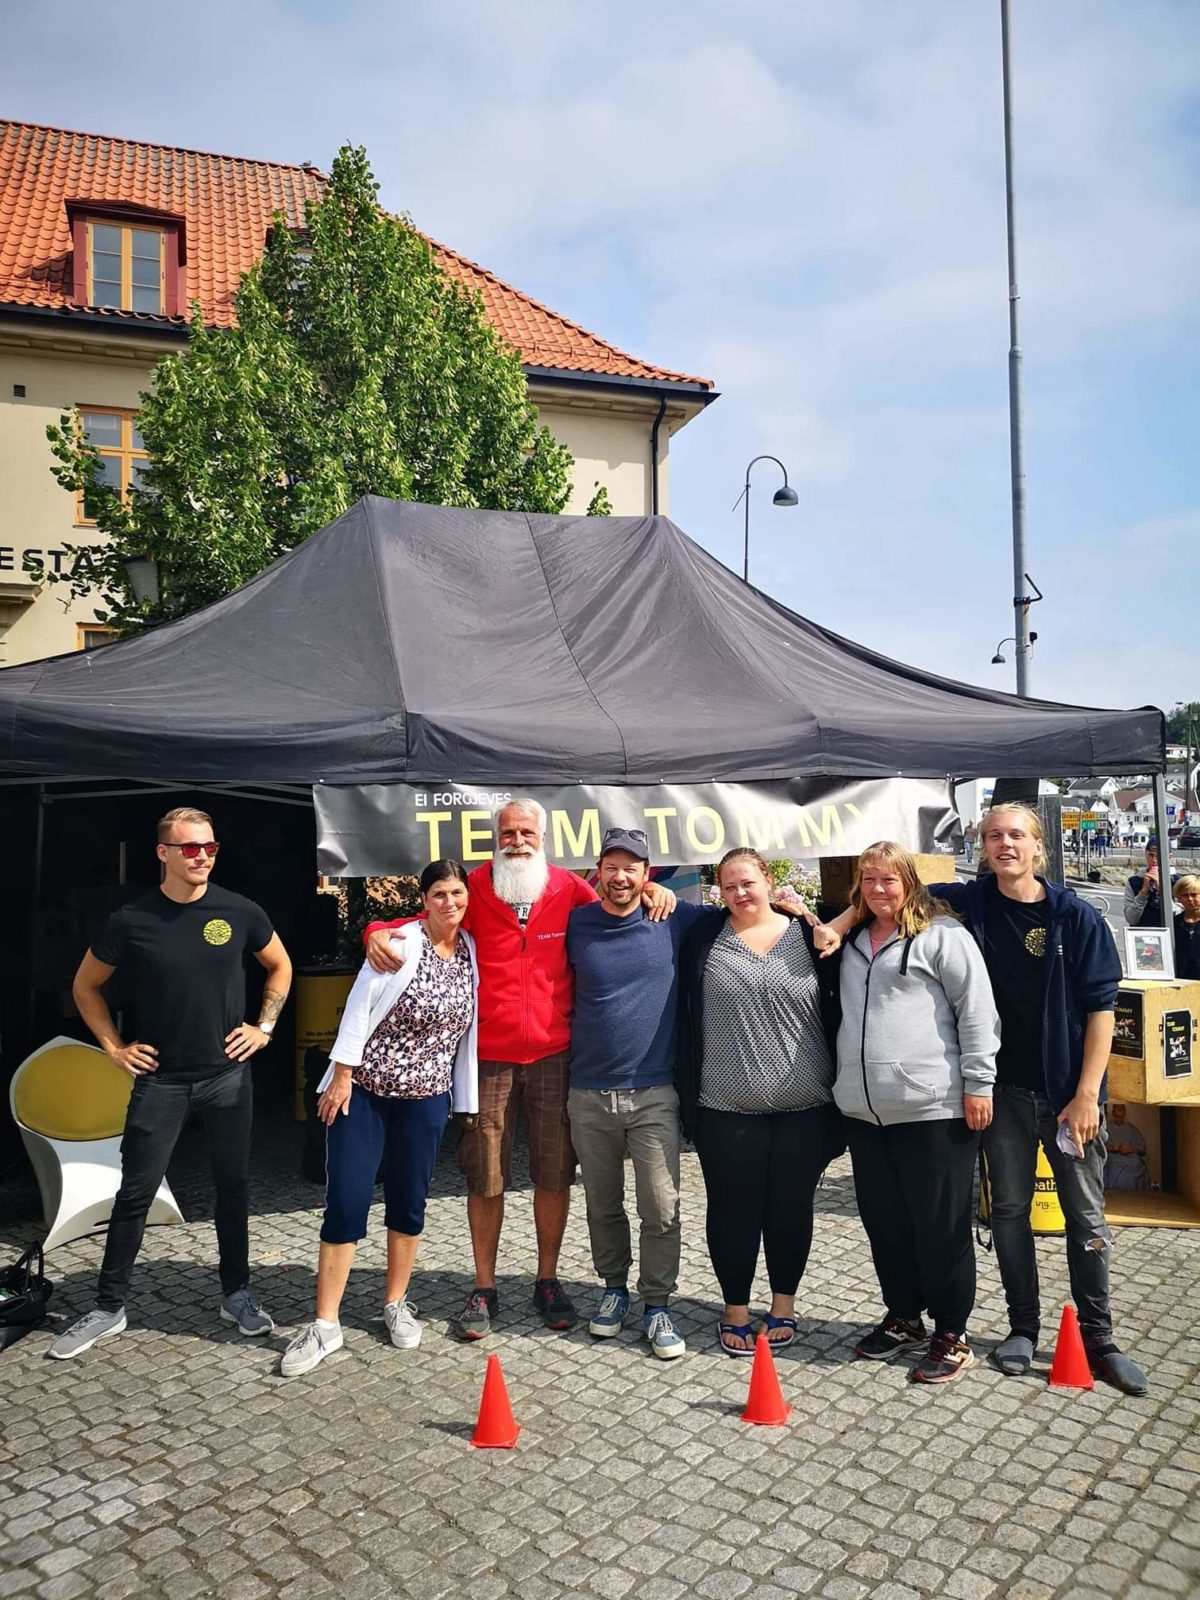 Kragerø – Team Tommy